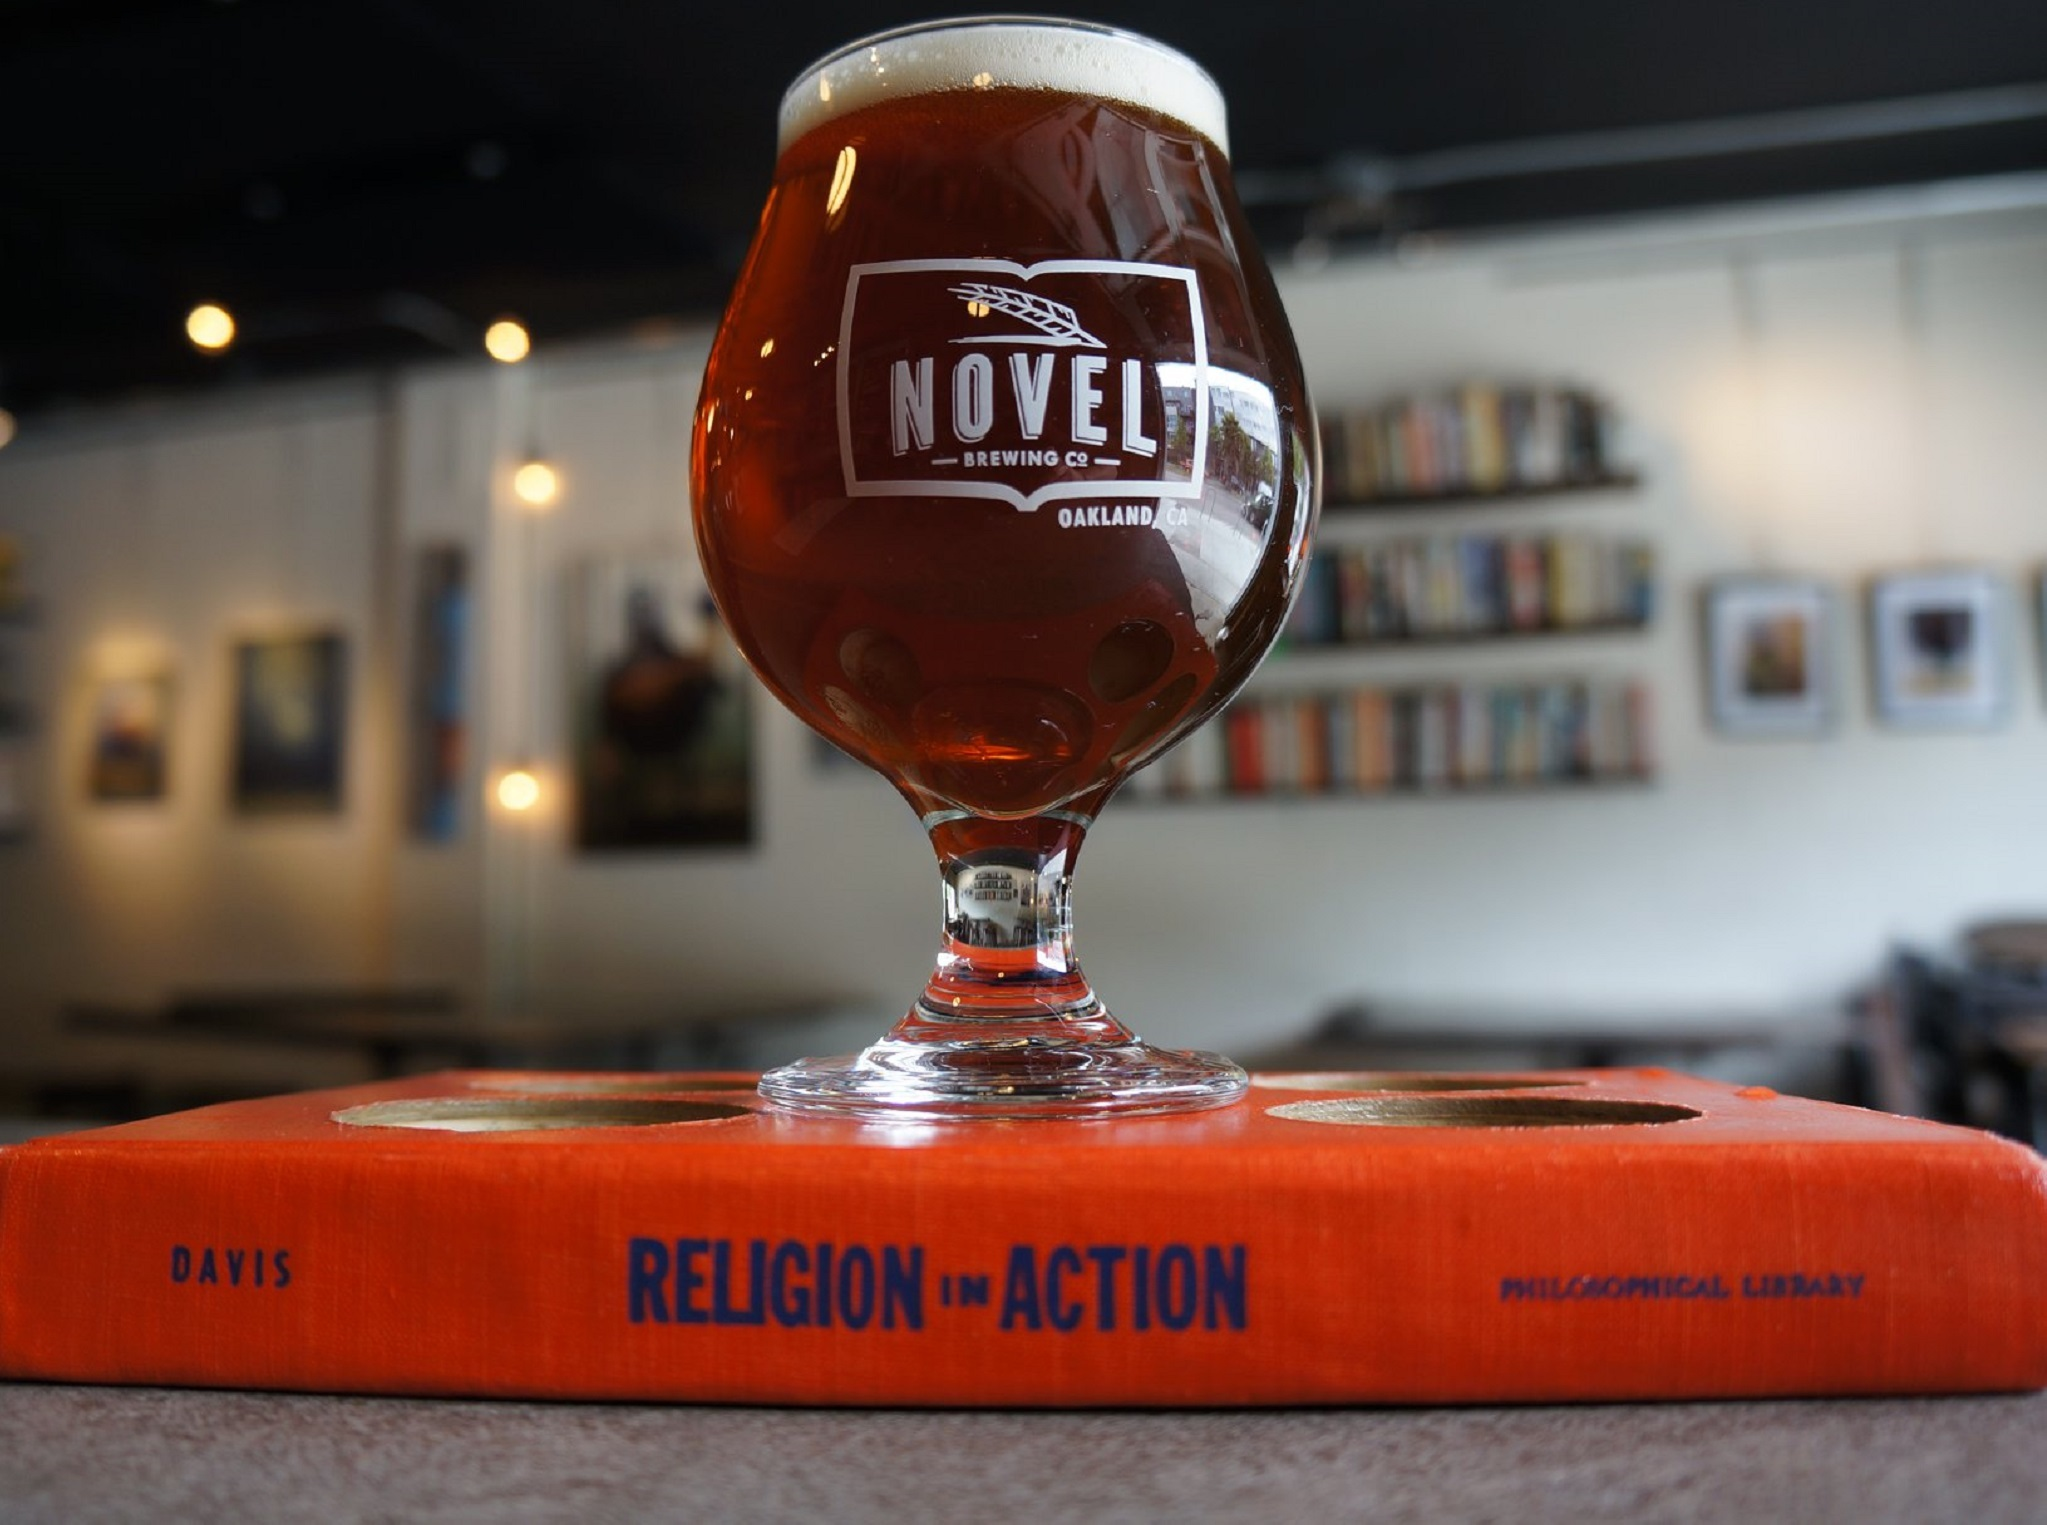 A beer on top of the book Religion in Action in a brewery